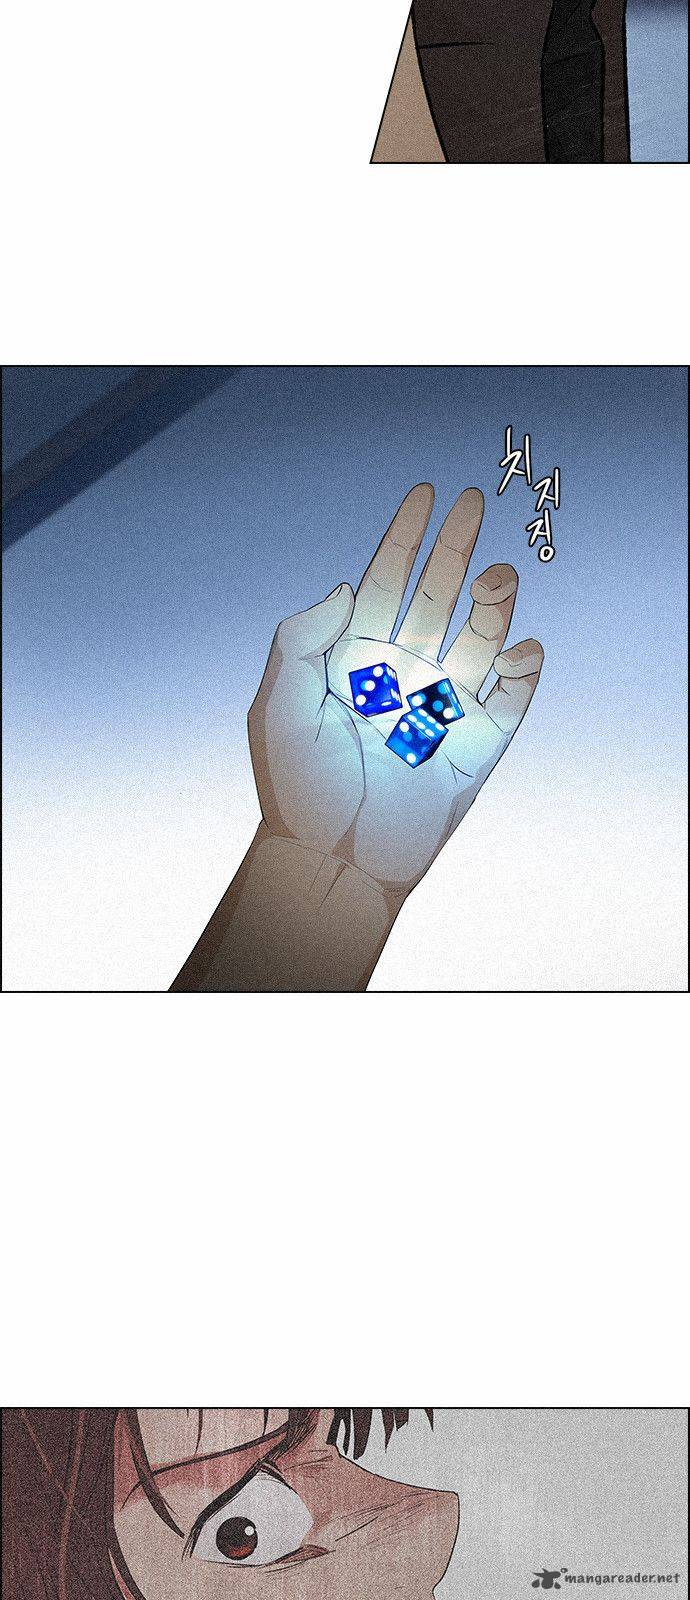 dice_the_cube_that_changes_everything_137_52